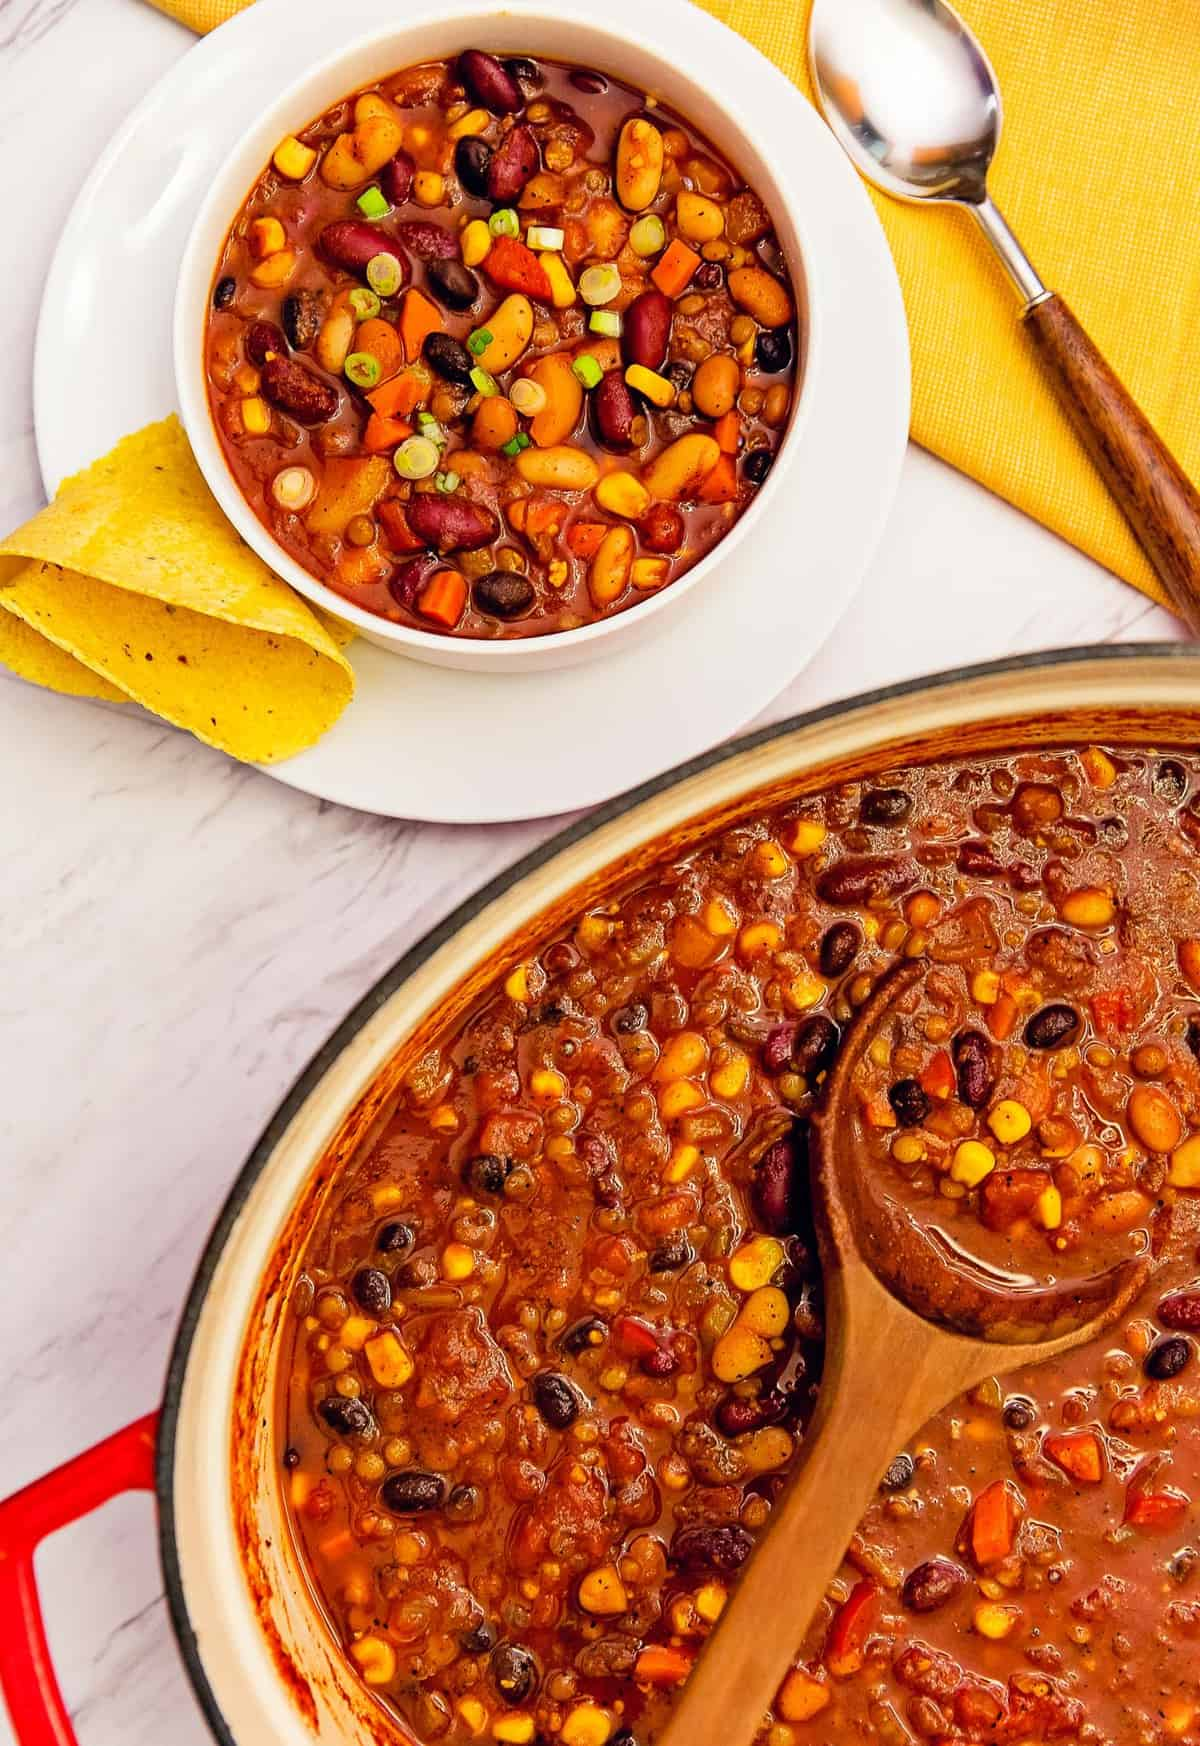 five bean chili, bean chili, chili, recipe, vegan, vegetarian, whole food plant based, wfpb, gluten free, oil free, refined sugar free, no oil, no refined sugar, no dairy, dinner, lunch, dinner party, entertaining, simple, healthy